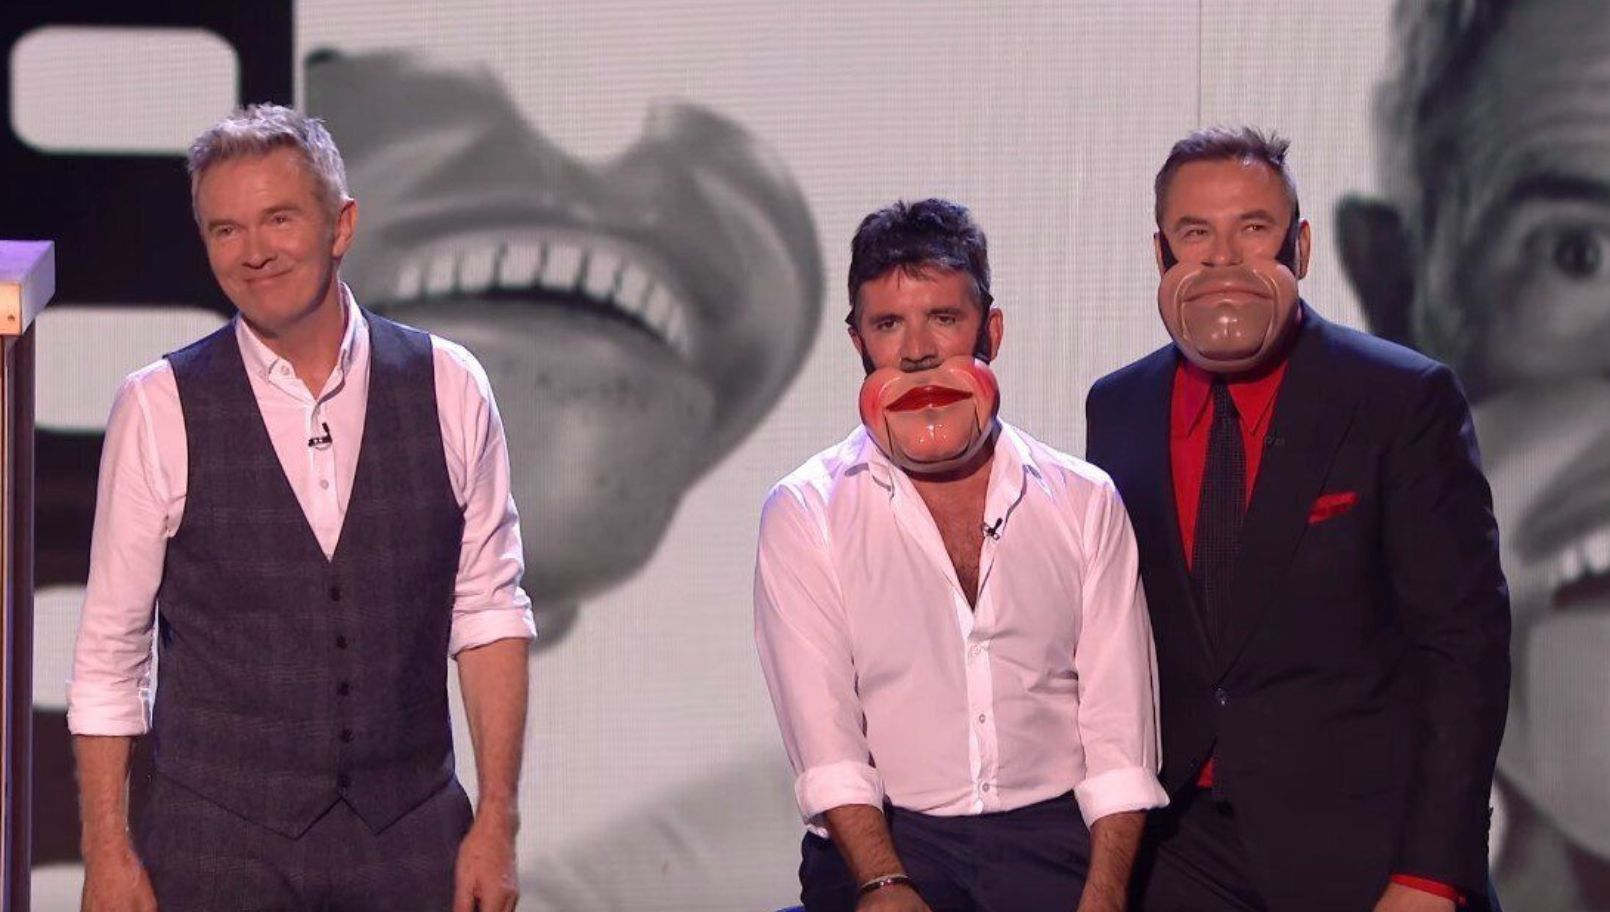 Britain's Got Talent contestant Jimmy Tamley brought Simon Cowell and David Walliams onto the stage for his semi-final act  (ITV)